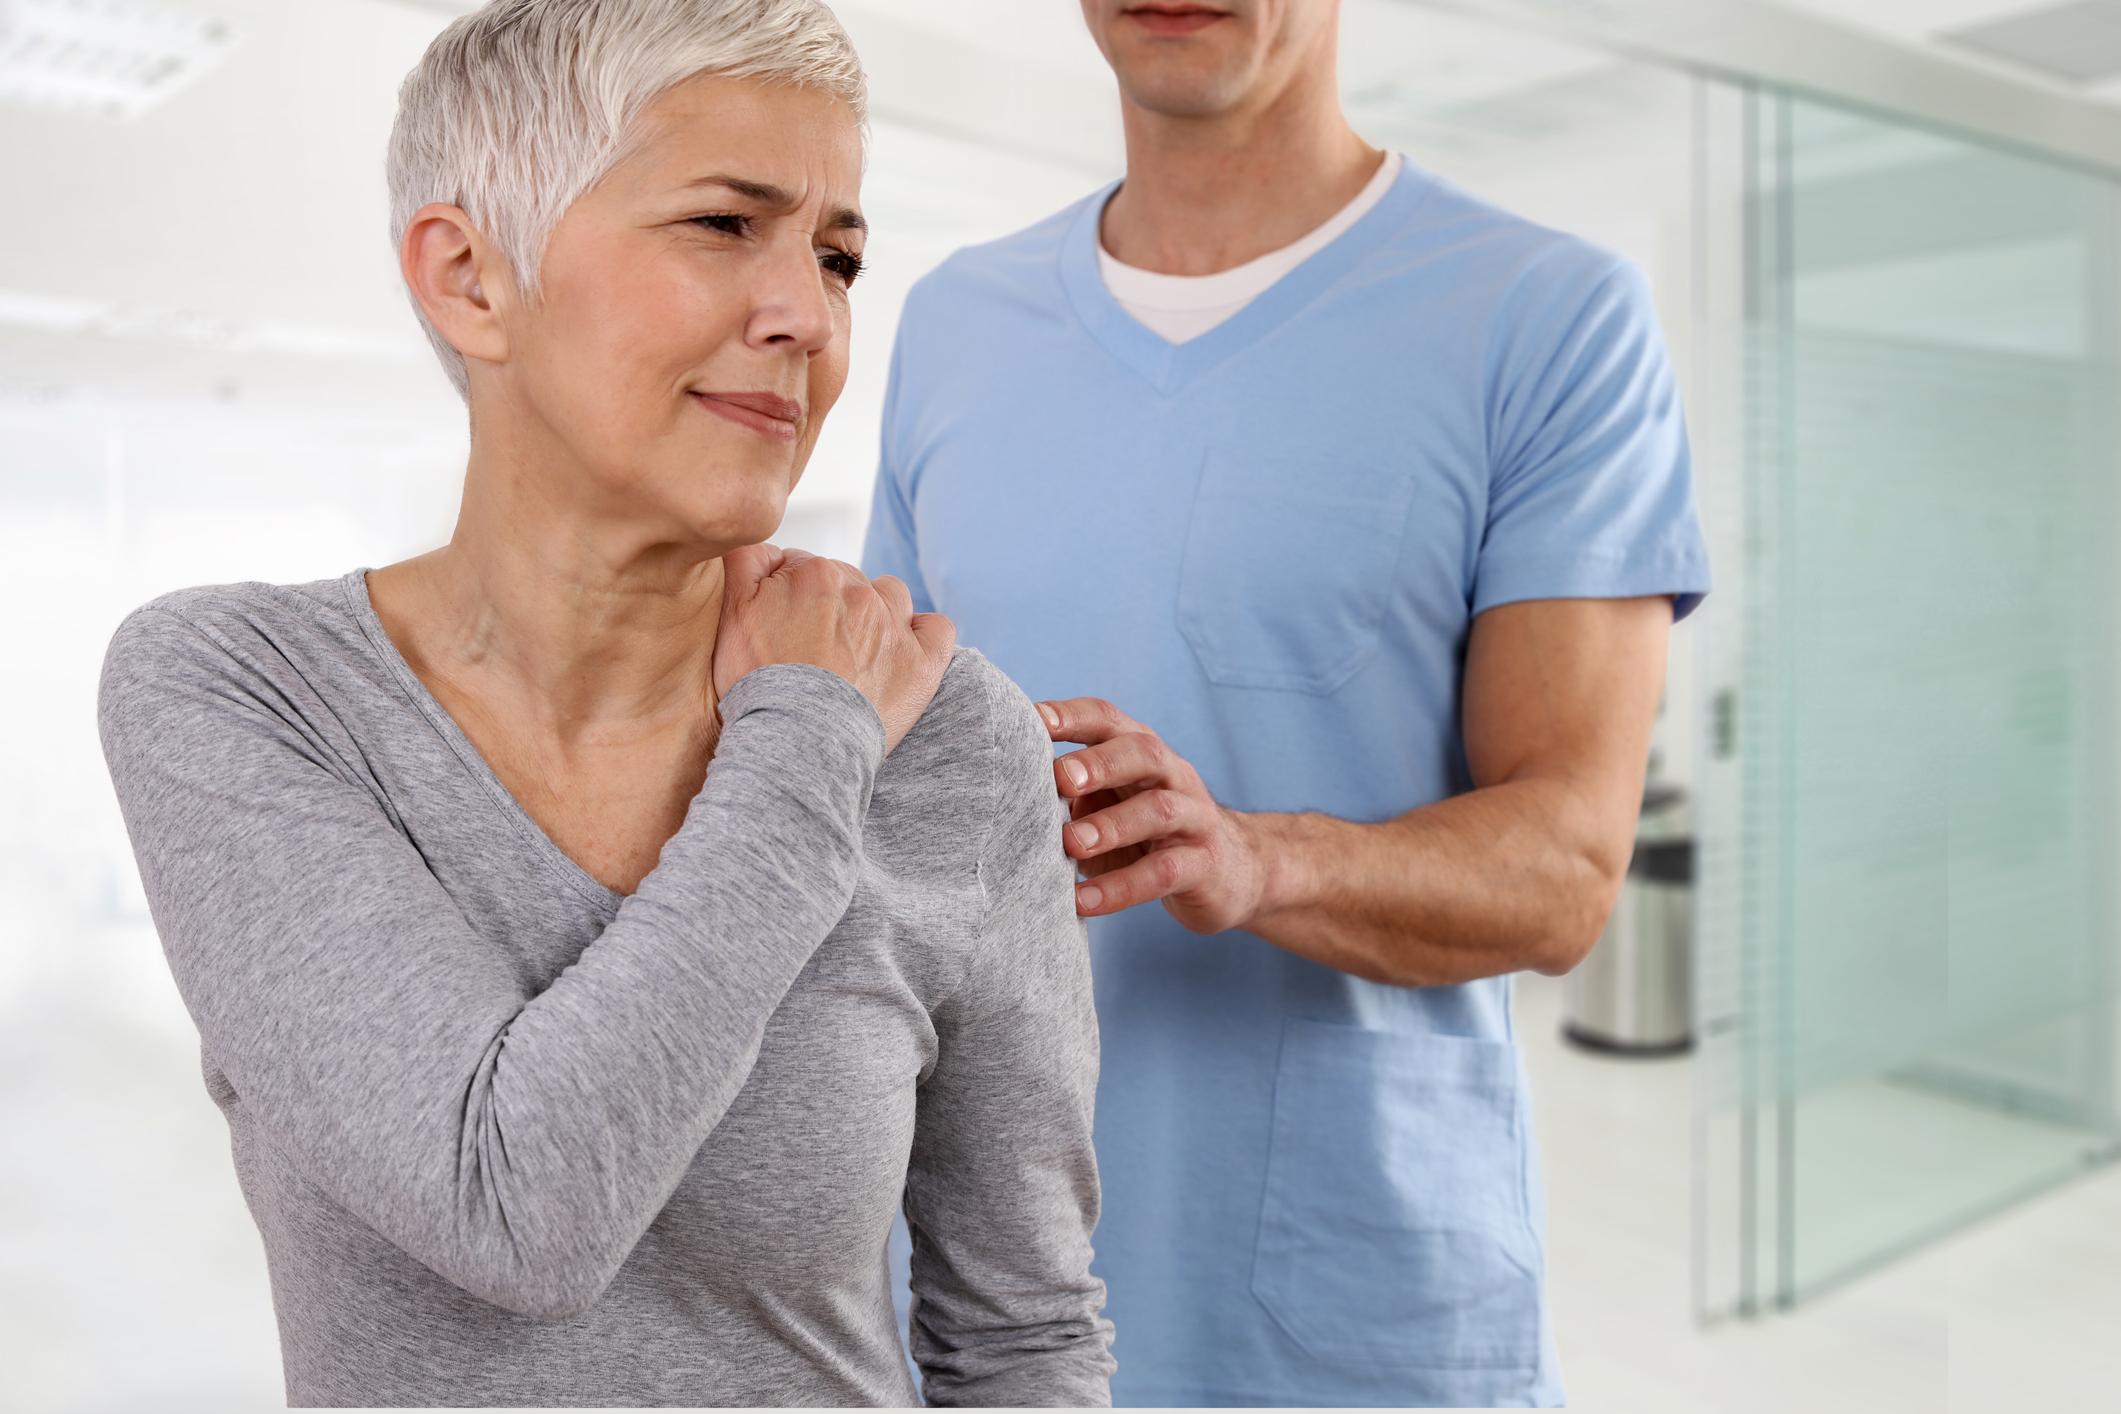 How do you know which chiropractor is best for you?